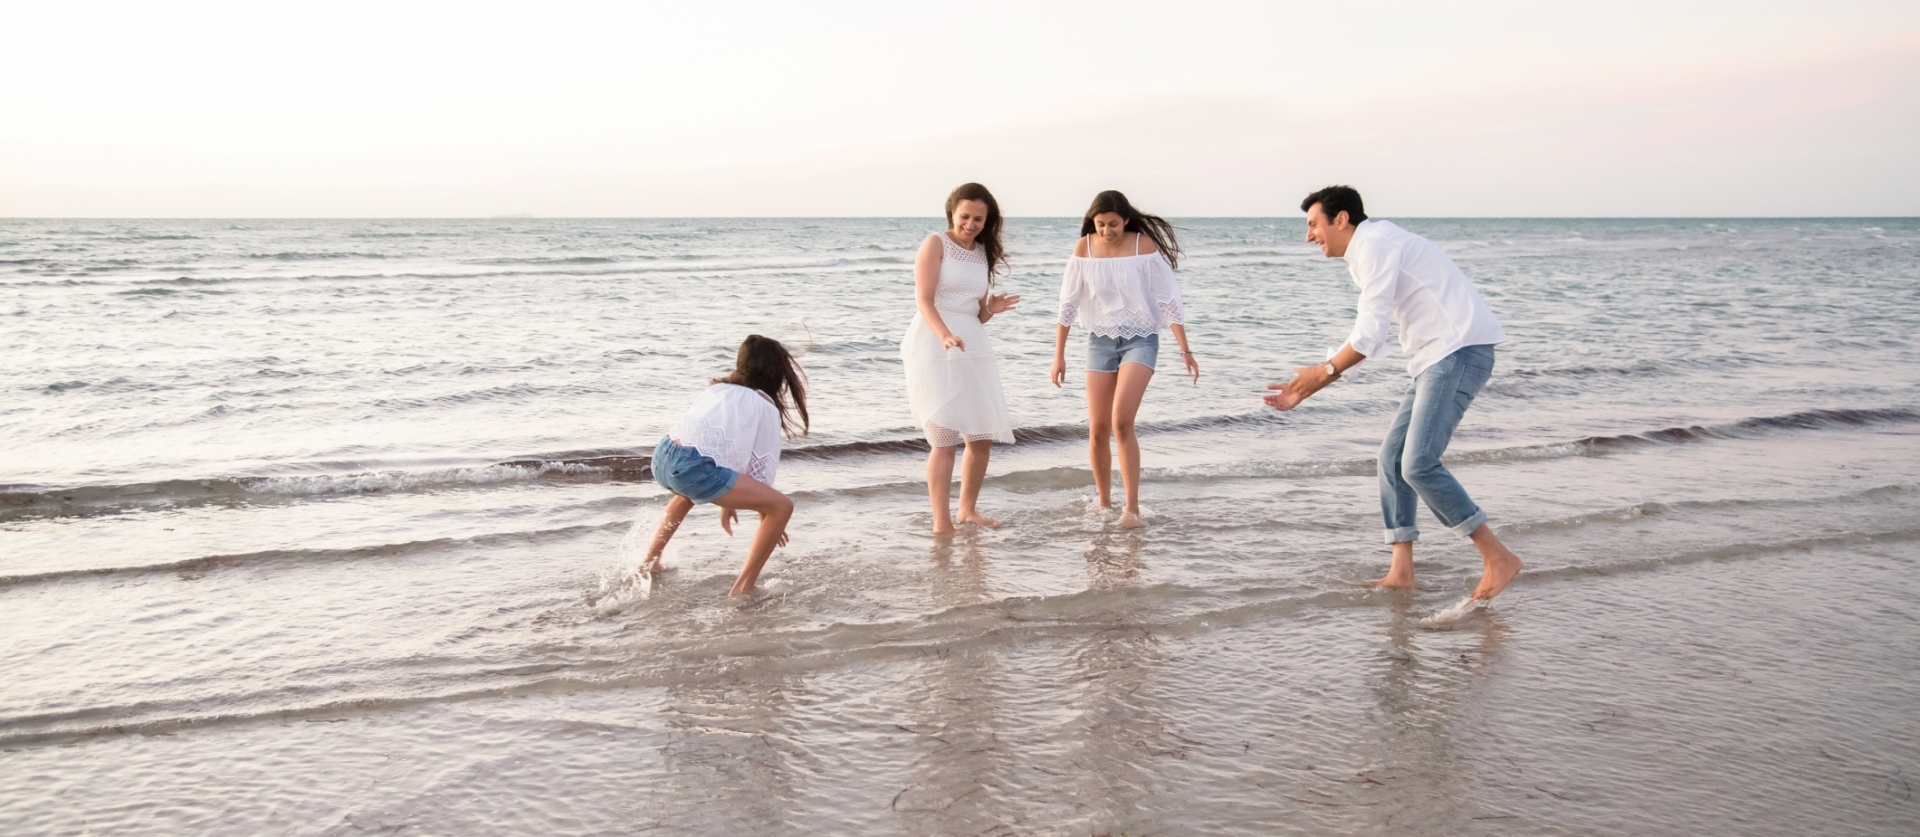 A photo of a family playing on the beach